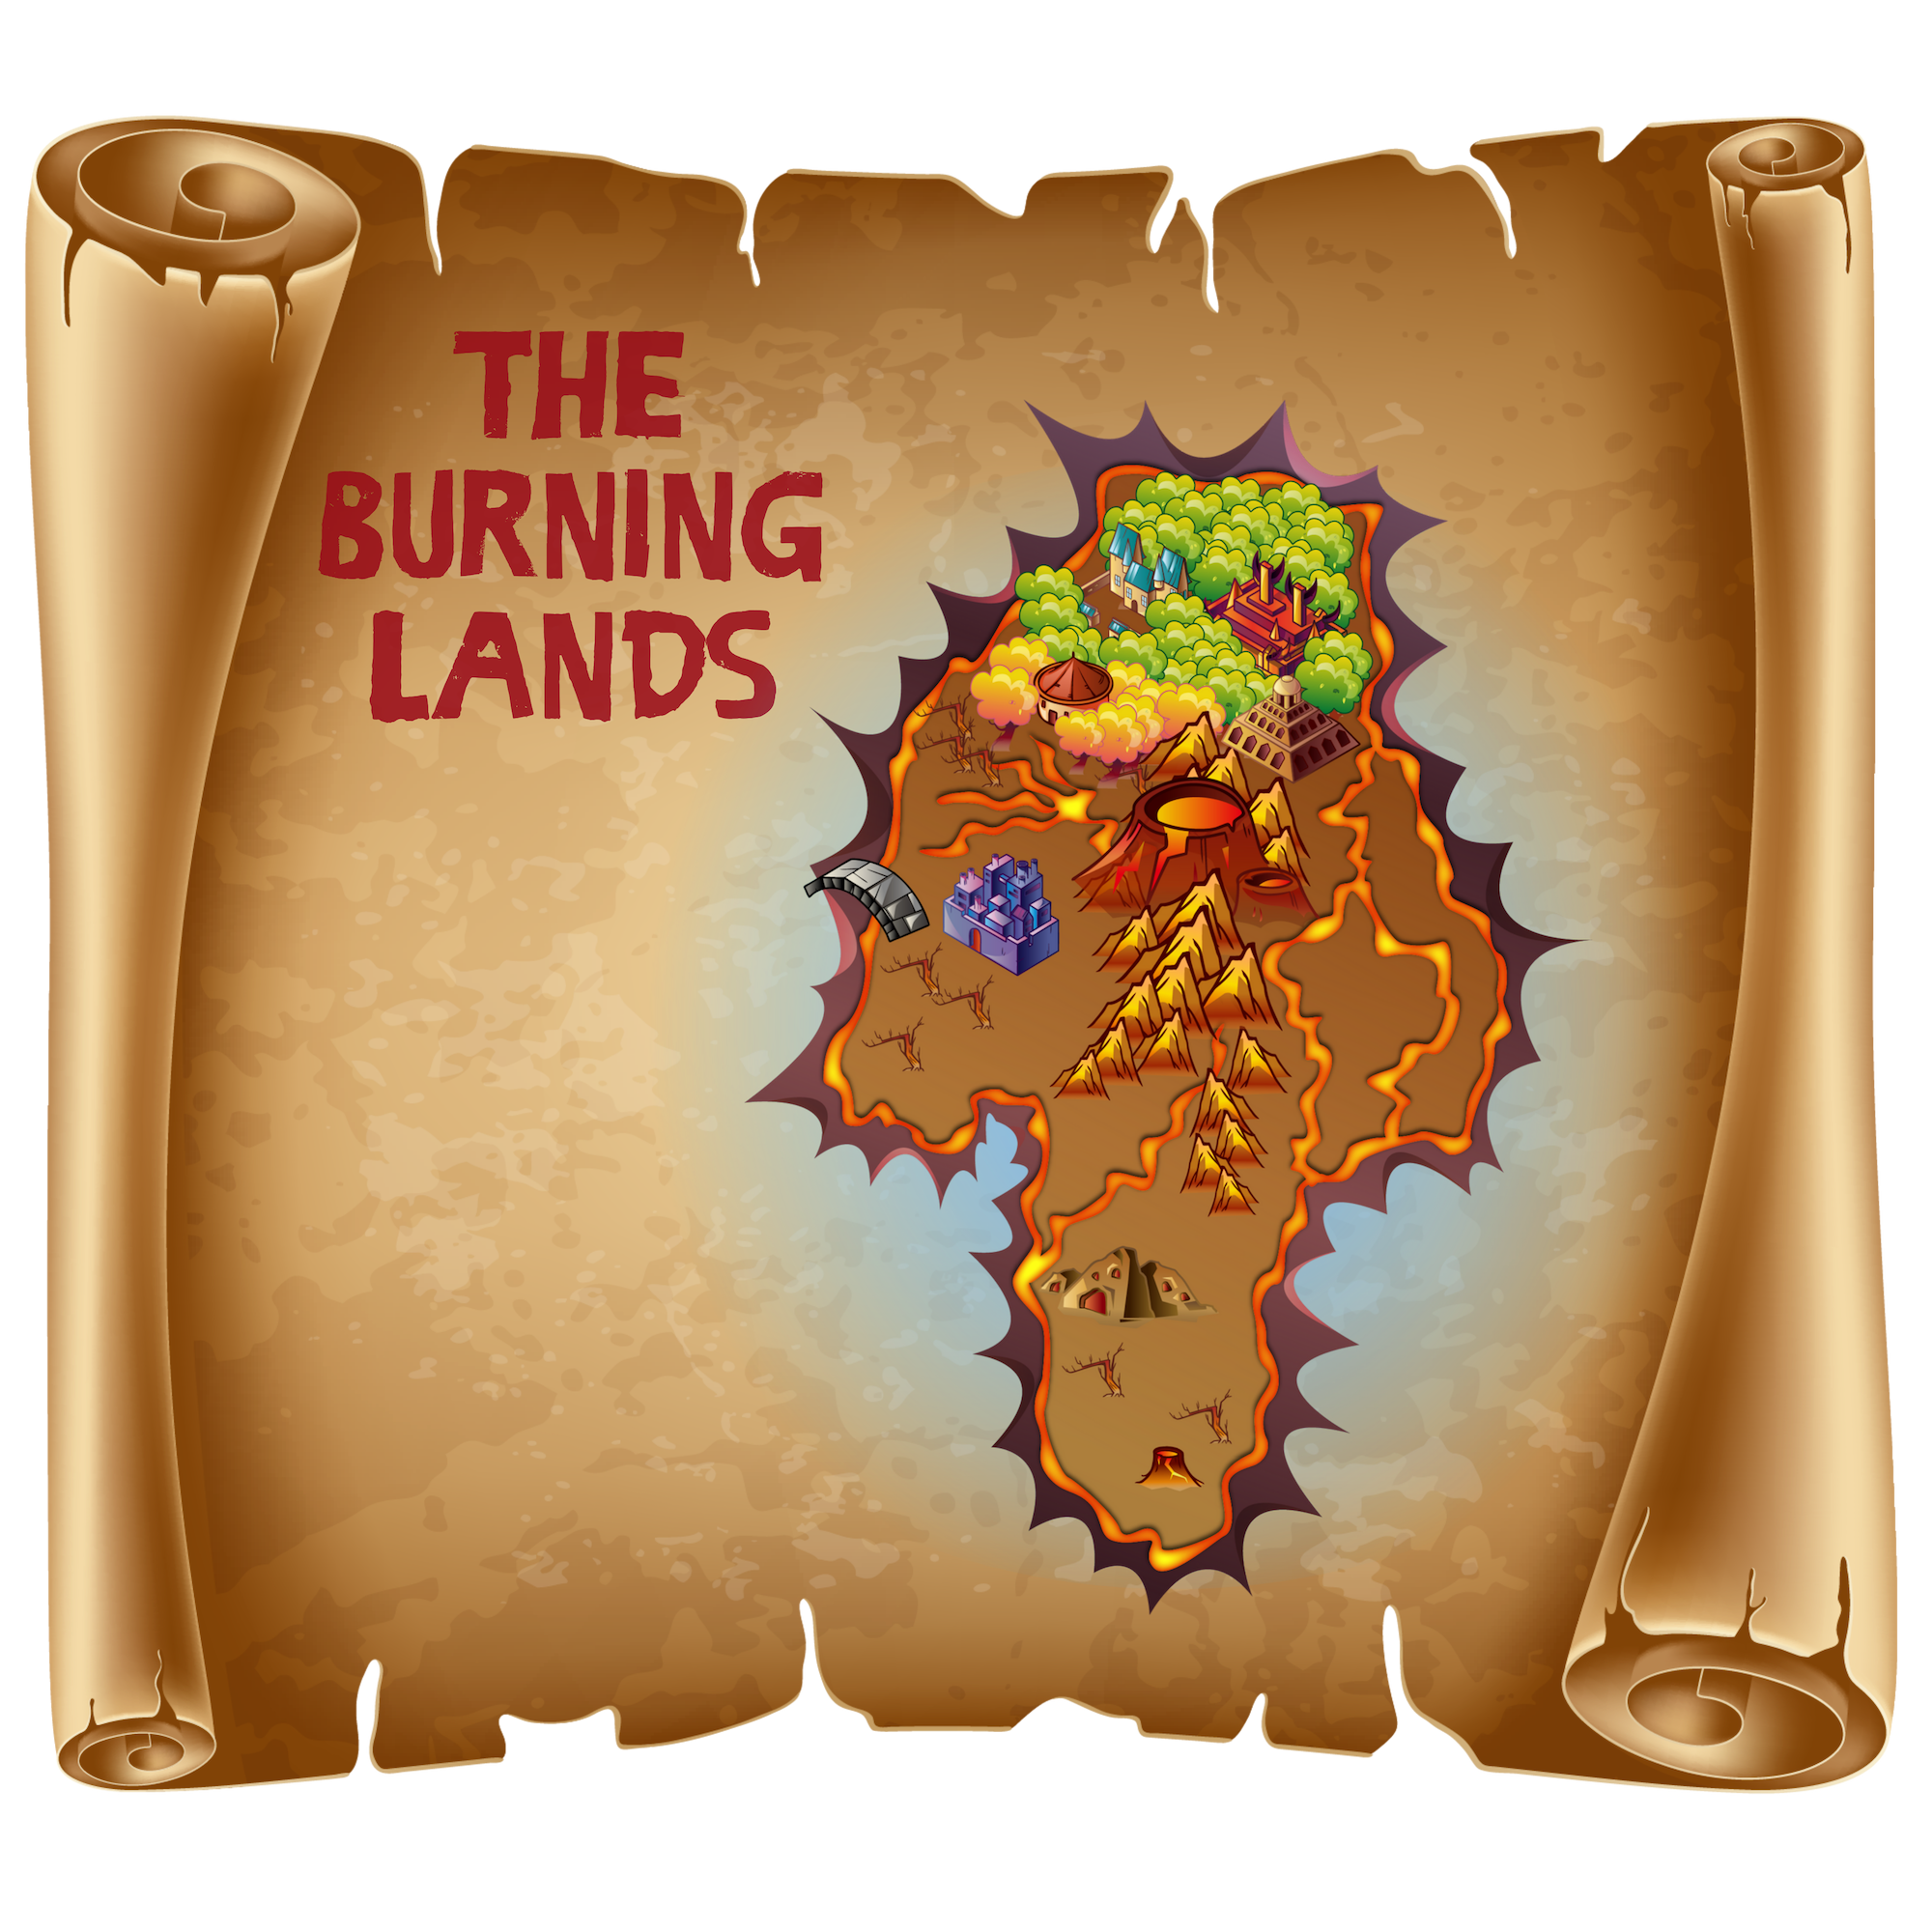 burning lands map no words.png